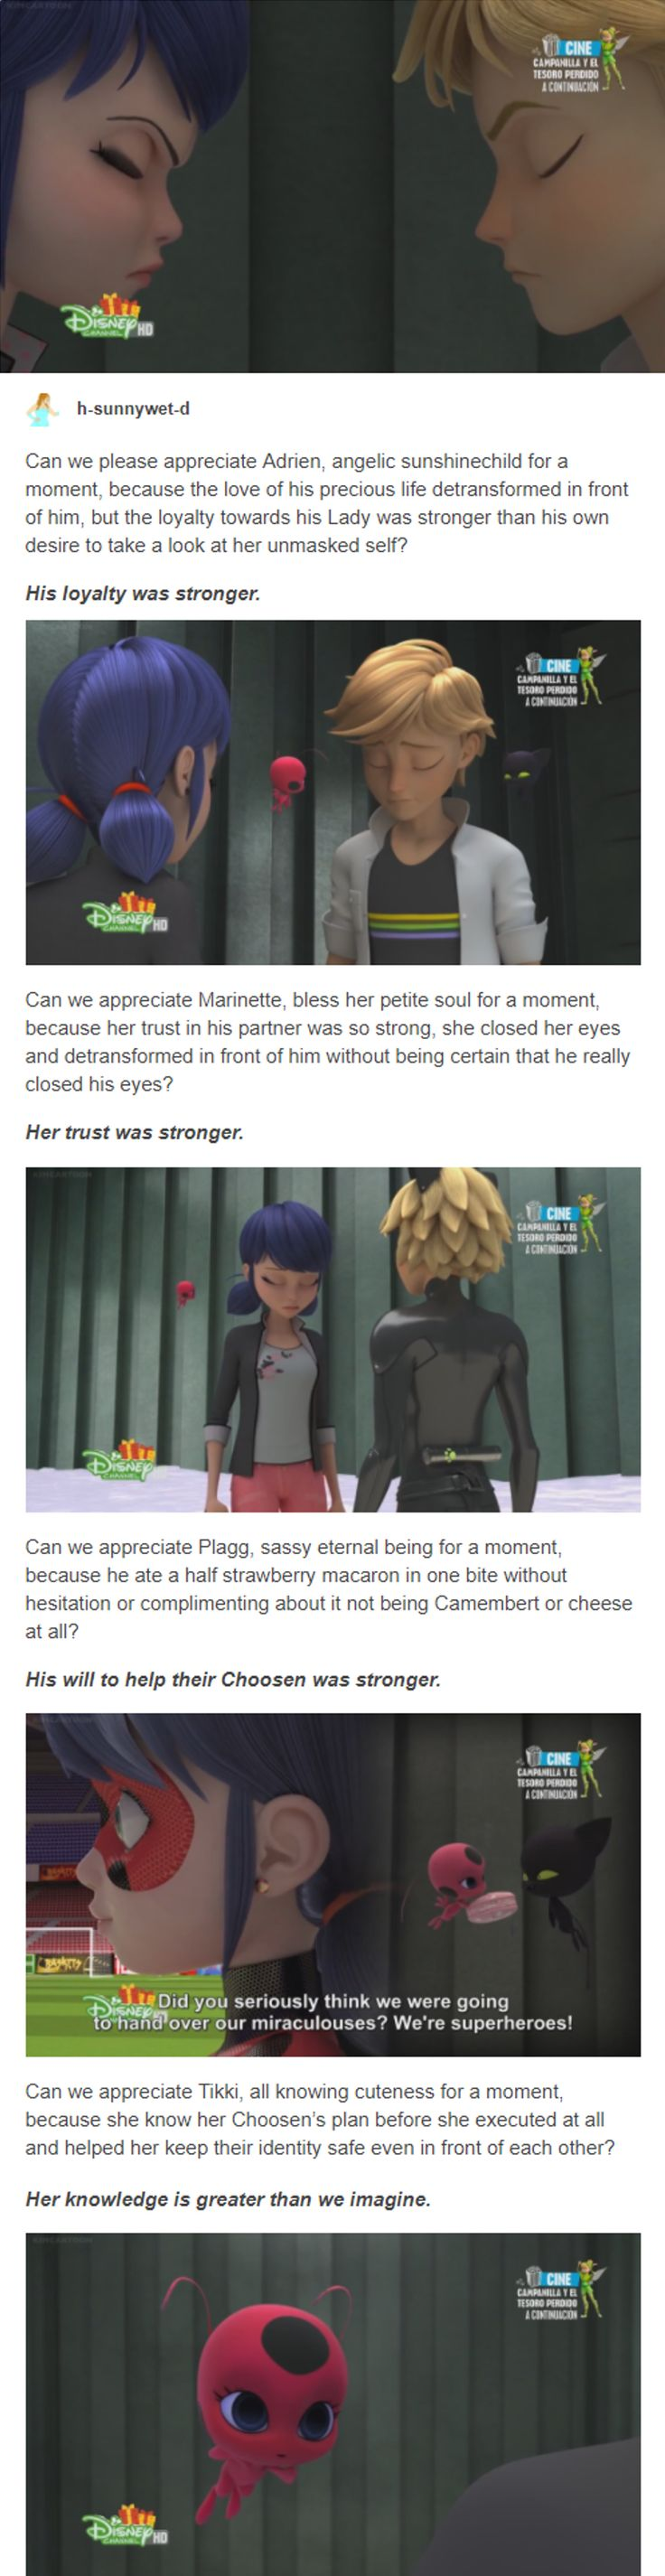 Actually I think that Plagg just act like that so Adrien will take breaks from the superhero life. This kid would be Chat Noir forever if he had the chance...